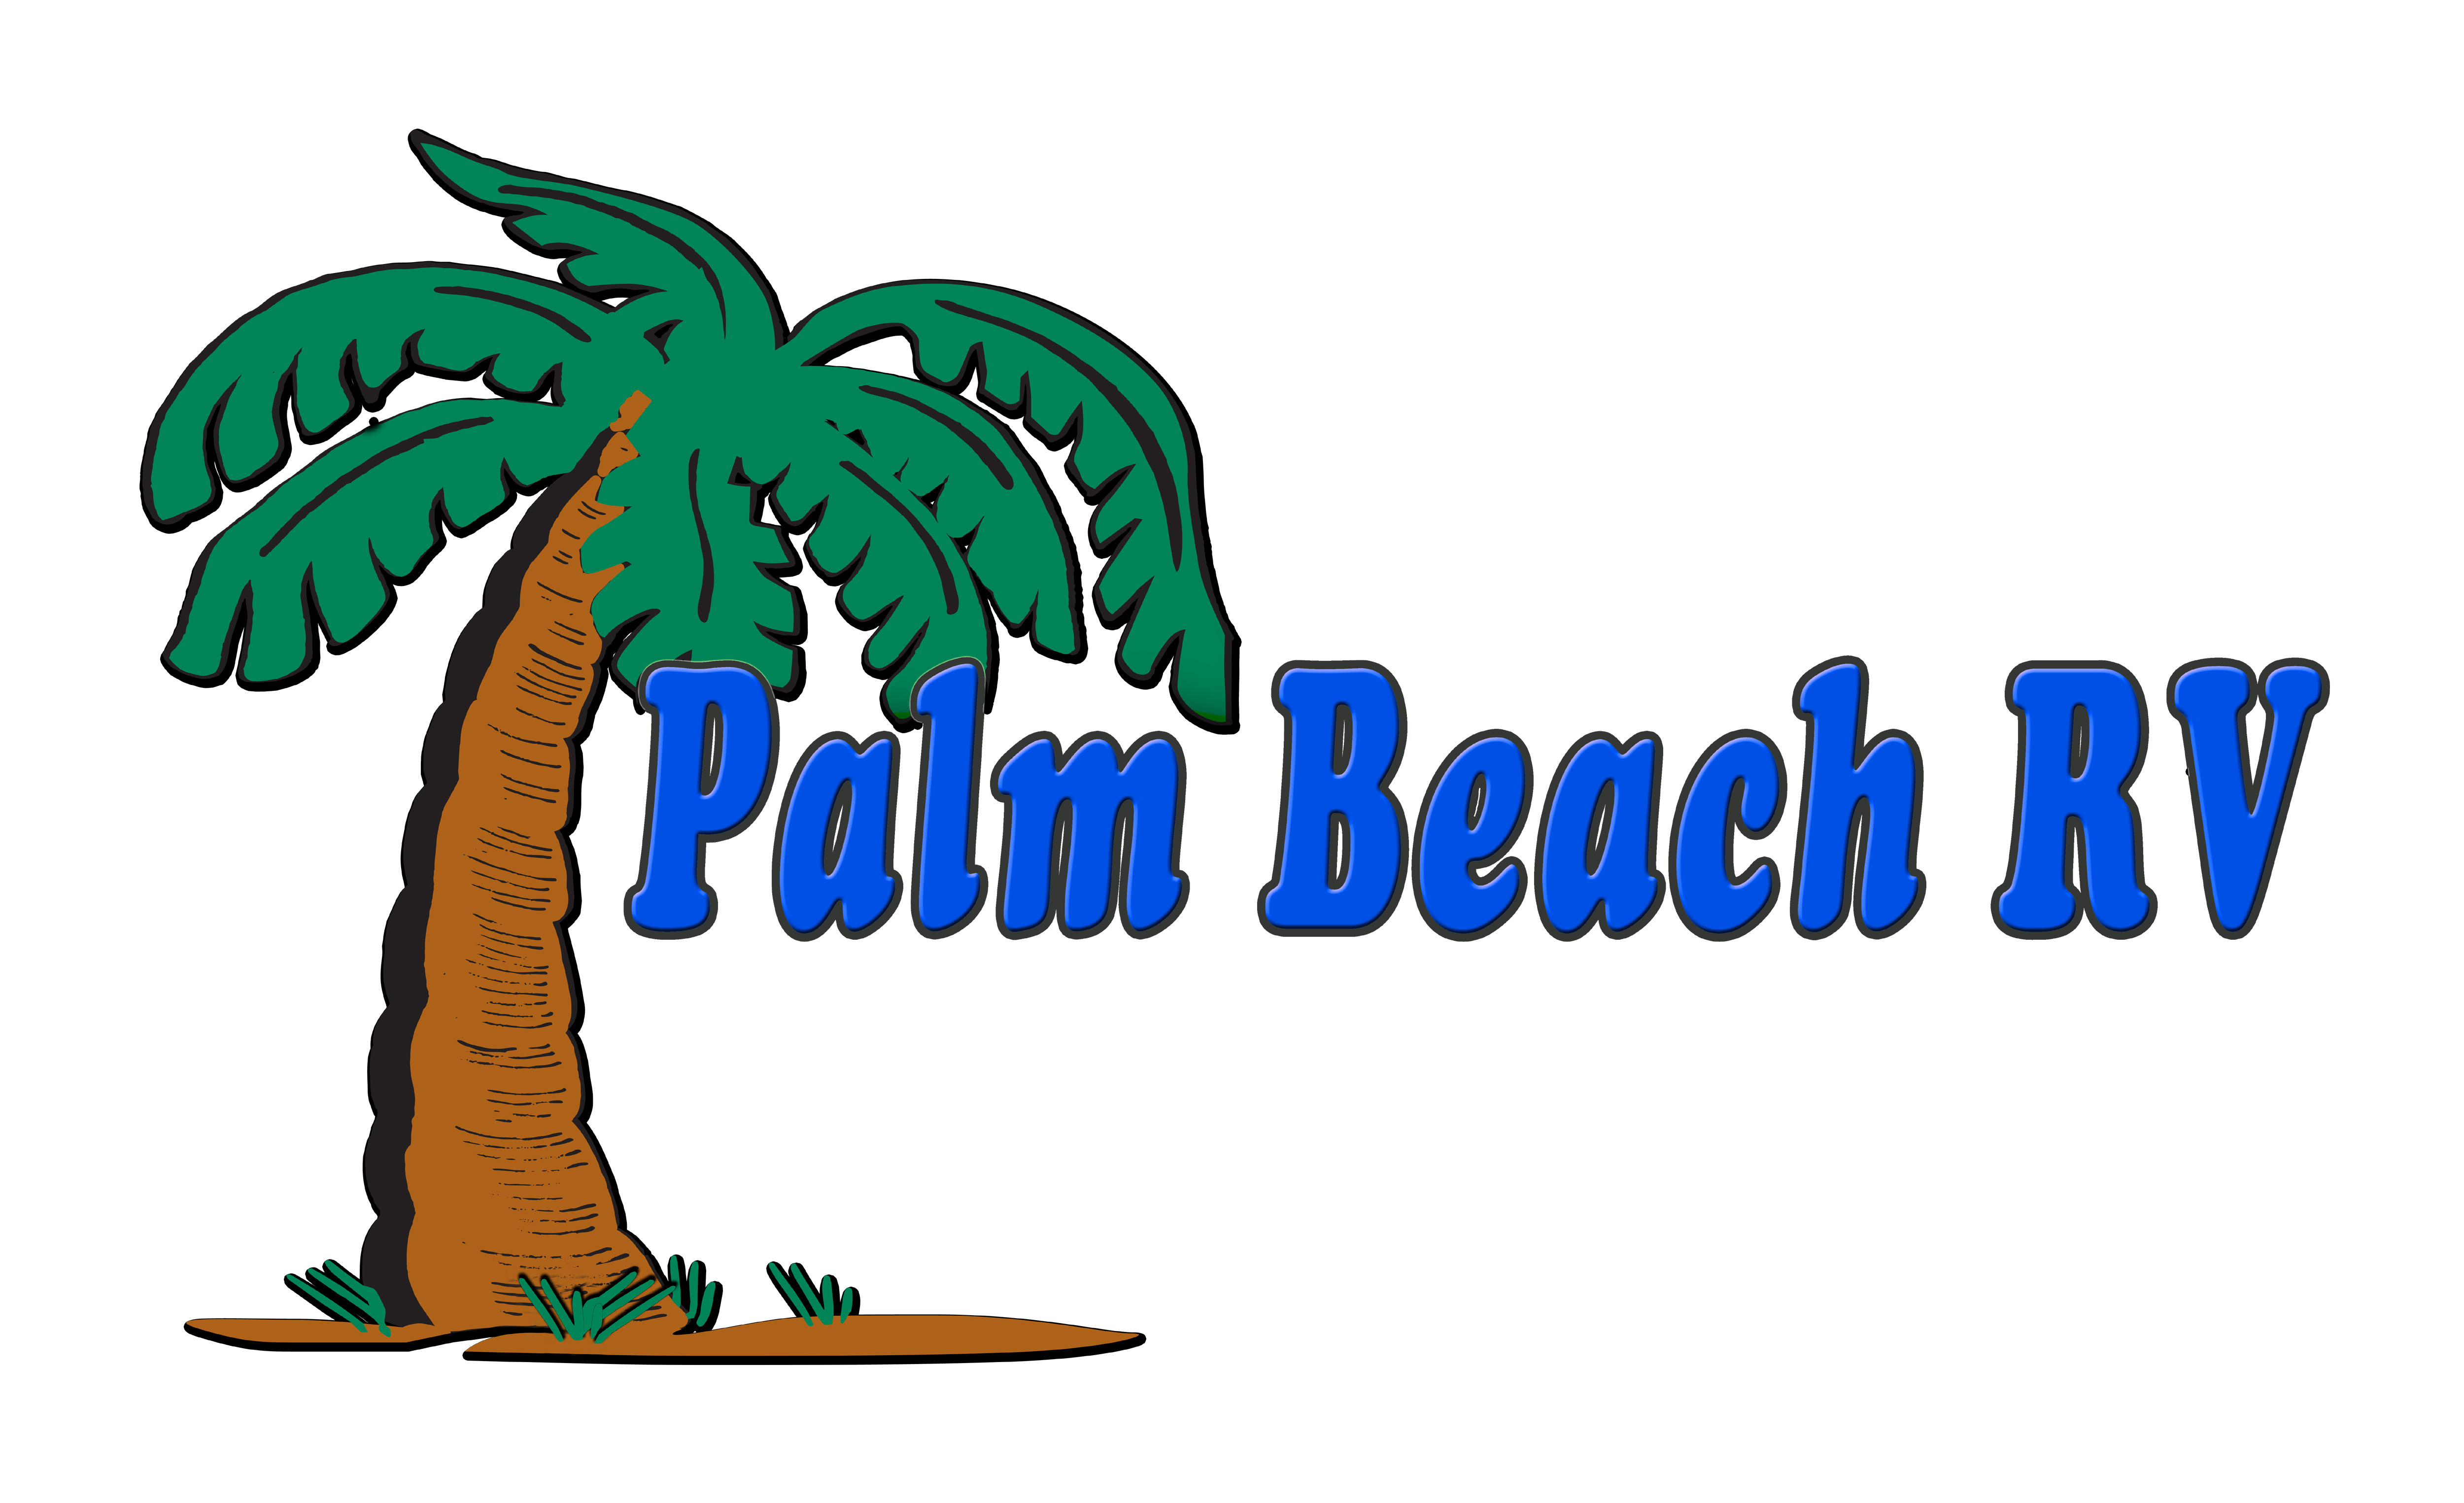 Local Business Image Is Palm Beach RV, Inc.